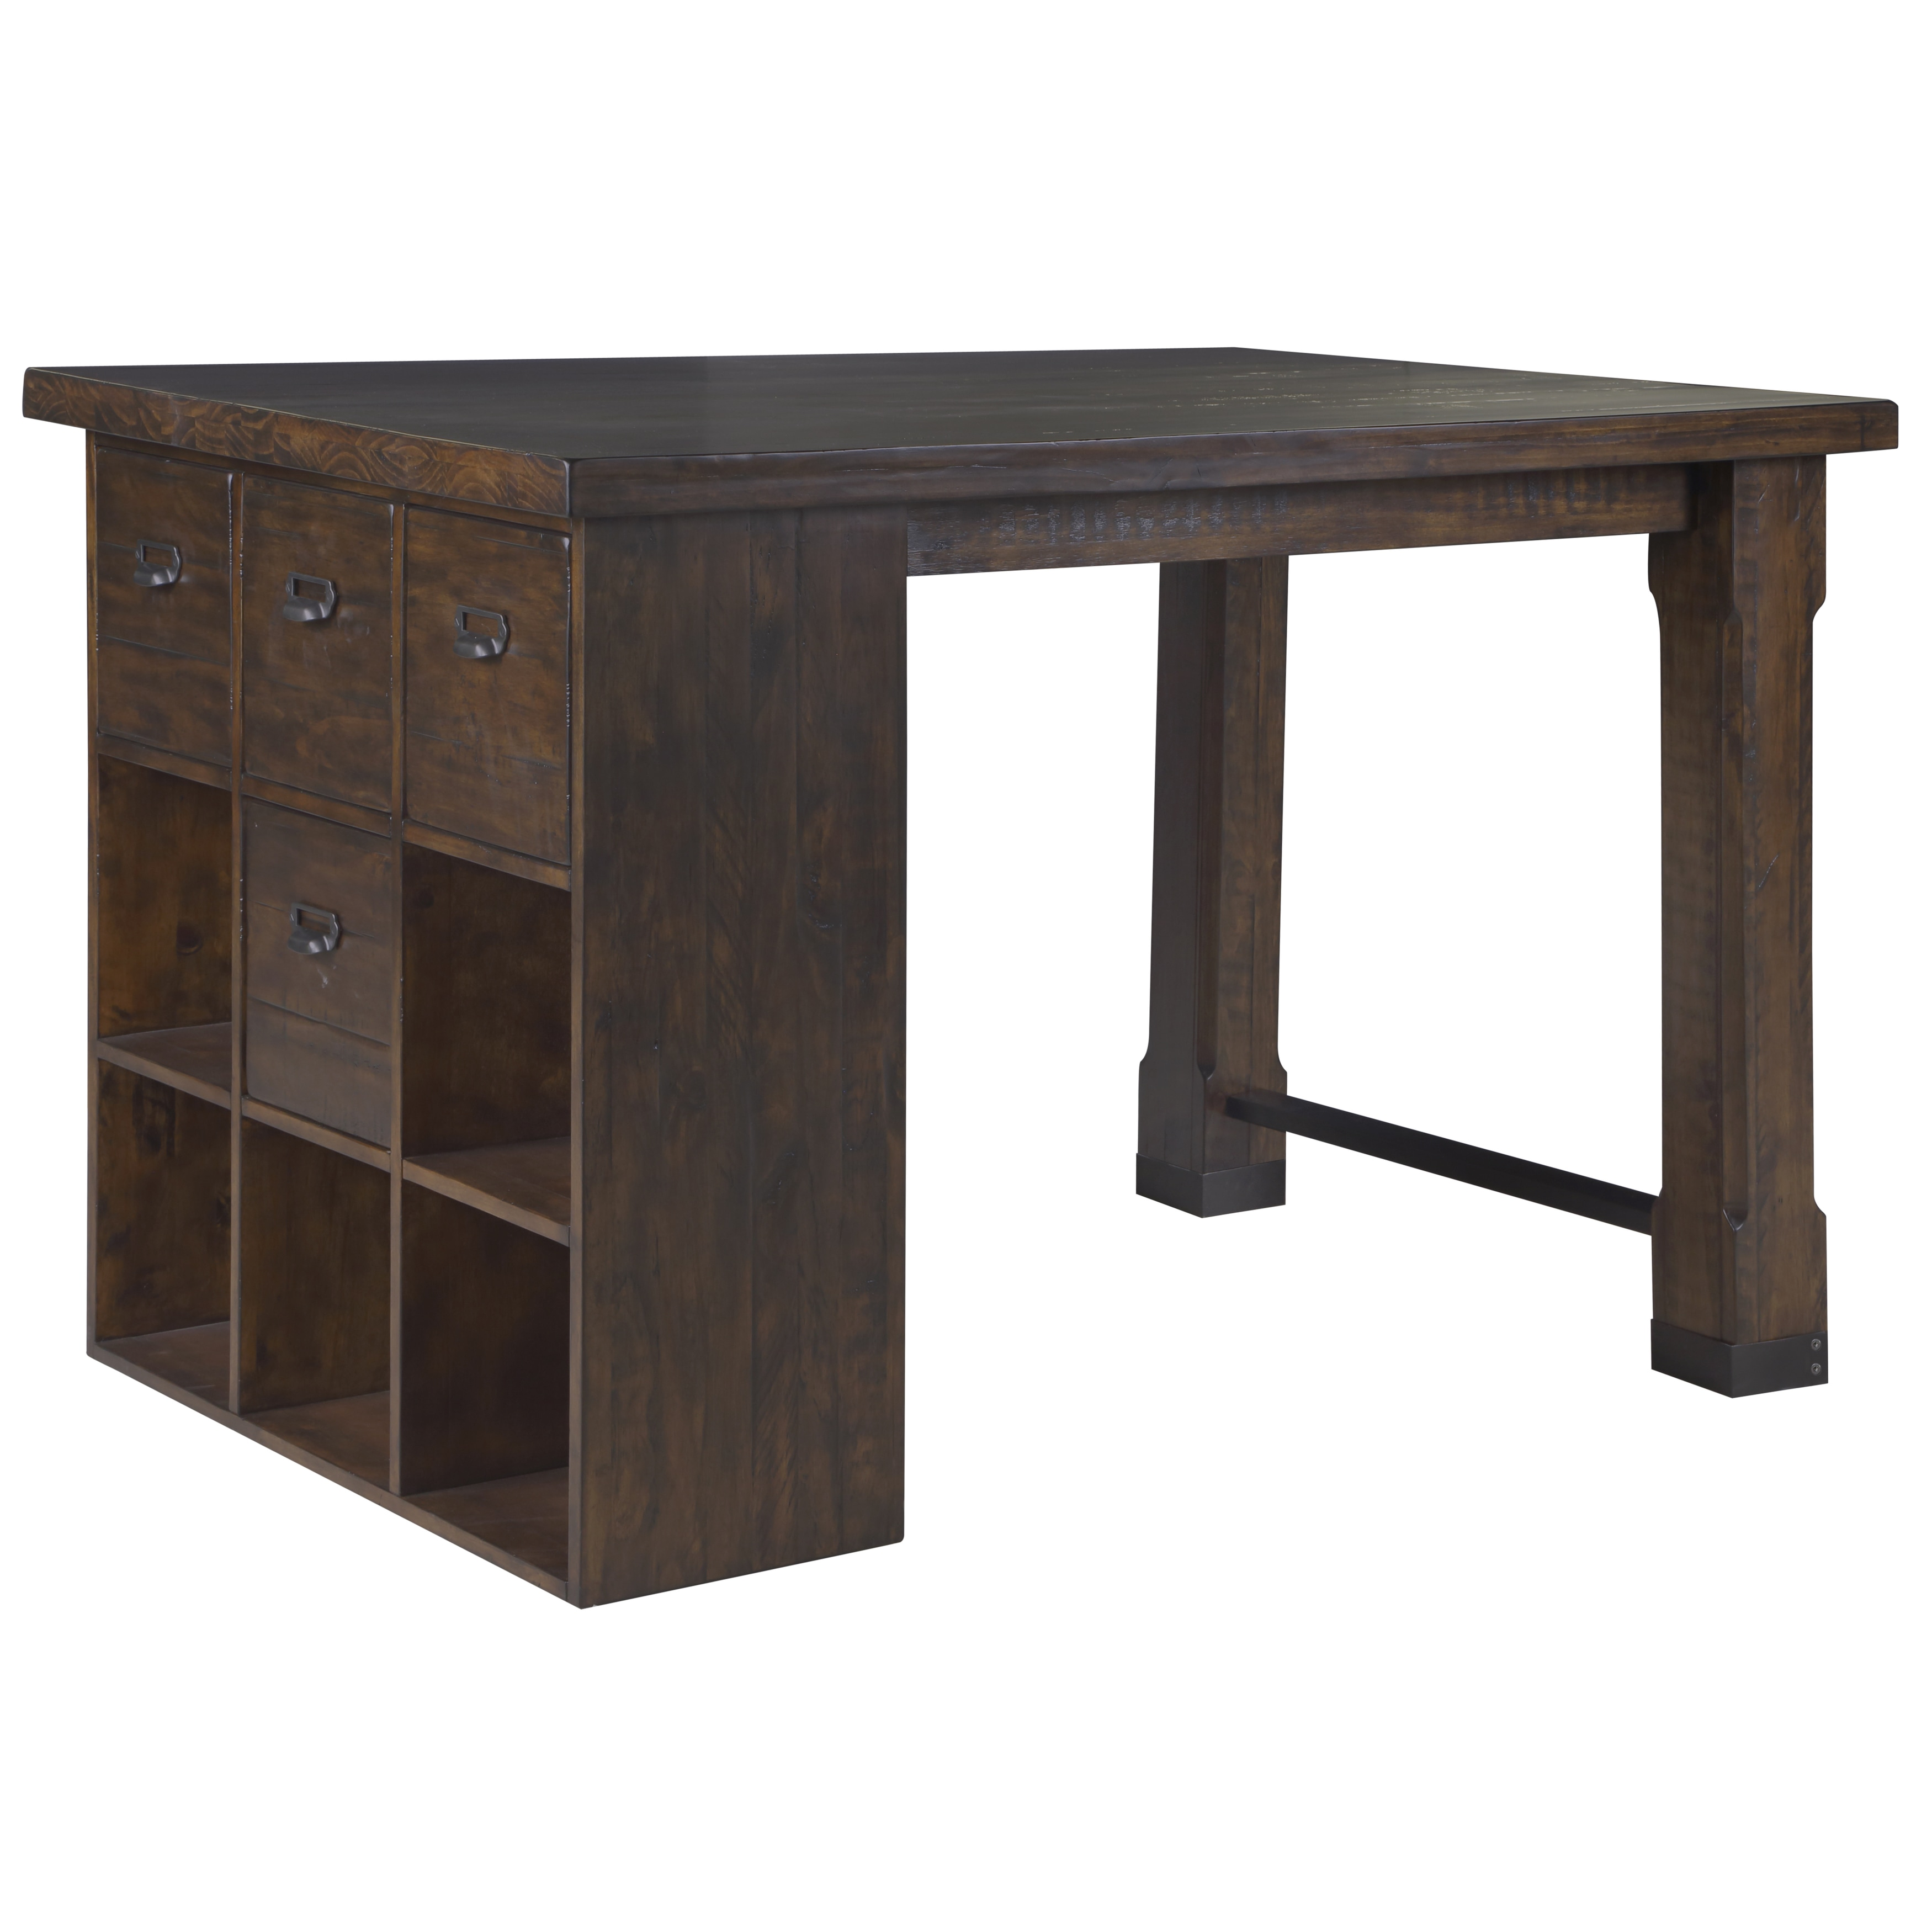 Silver Orchid Bowers Asymmetrical Counter Height Desk With Cube Storage/ Drawers